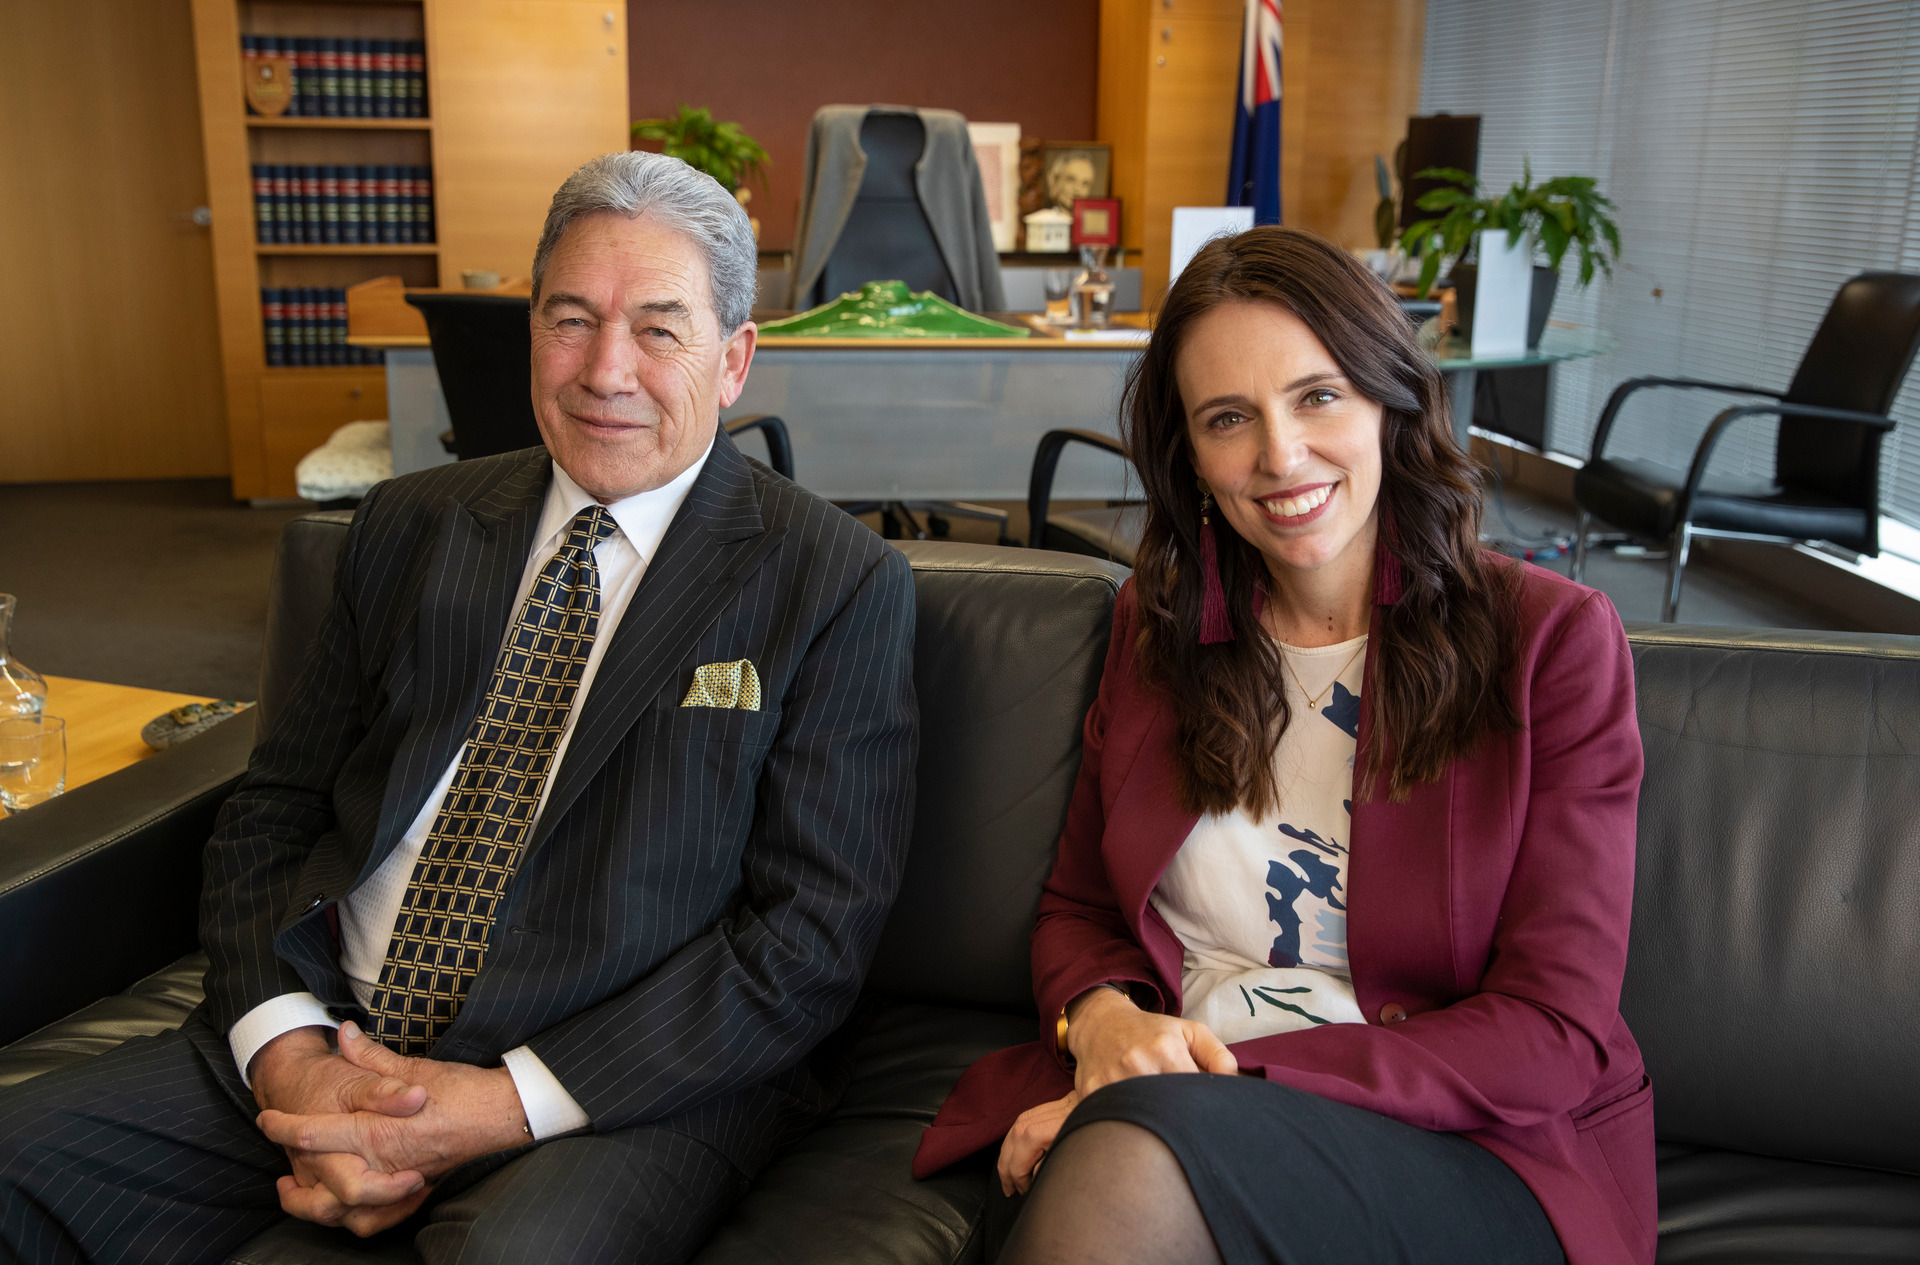 Deputy PM Winston Peters 'chipper' after surgery and 'gagging' to get back to Wellington